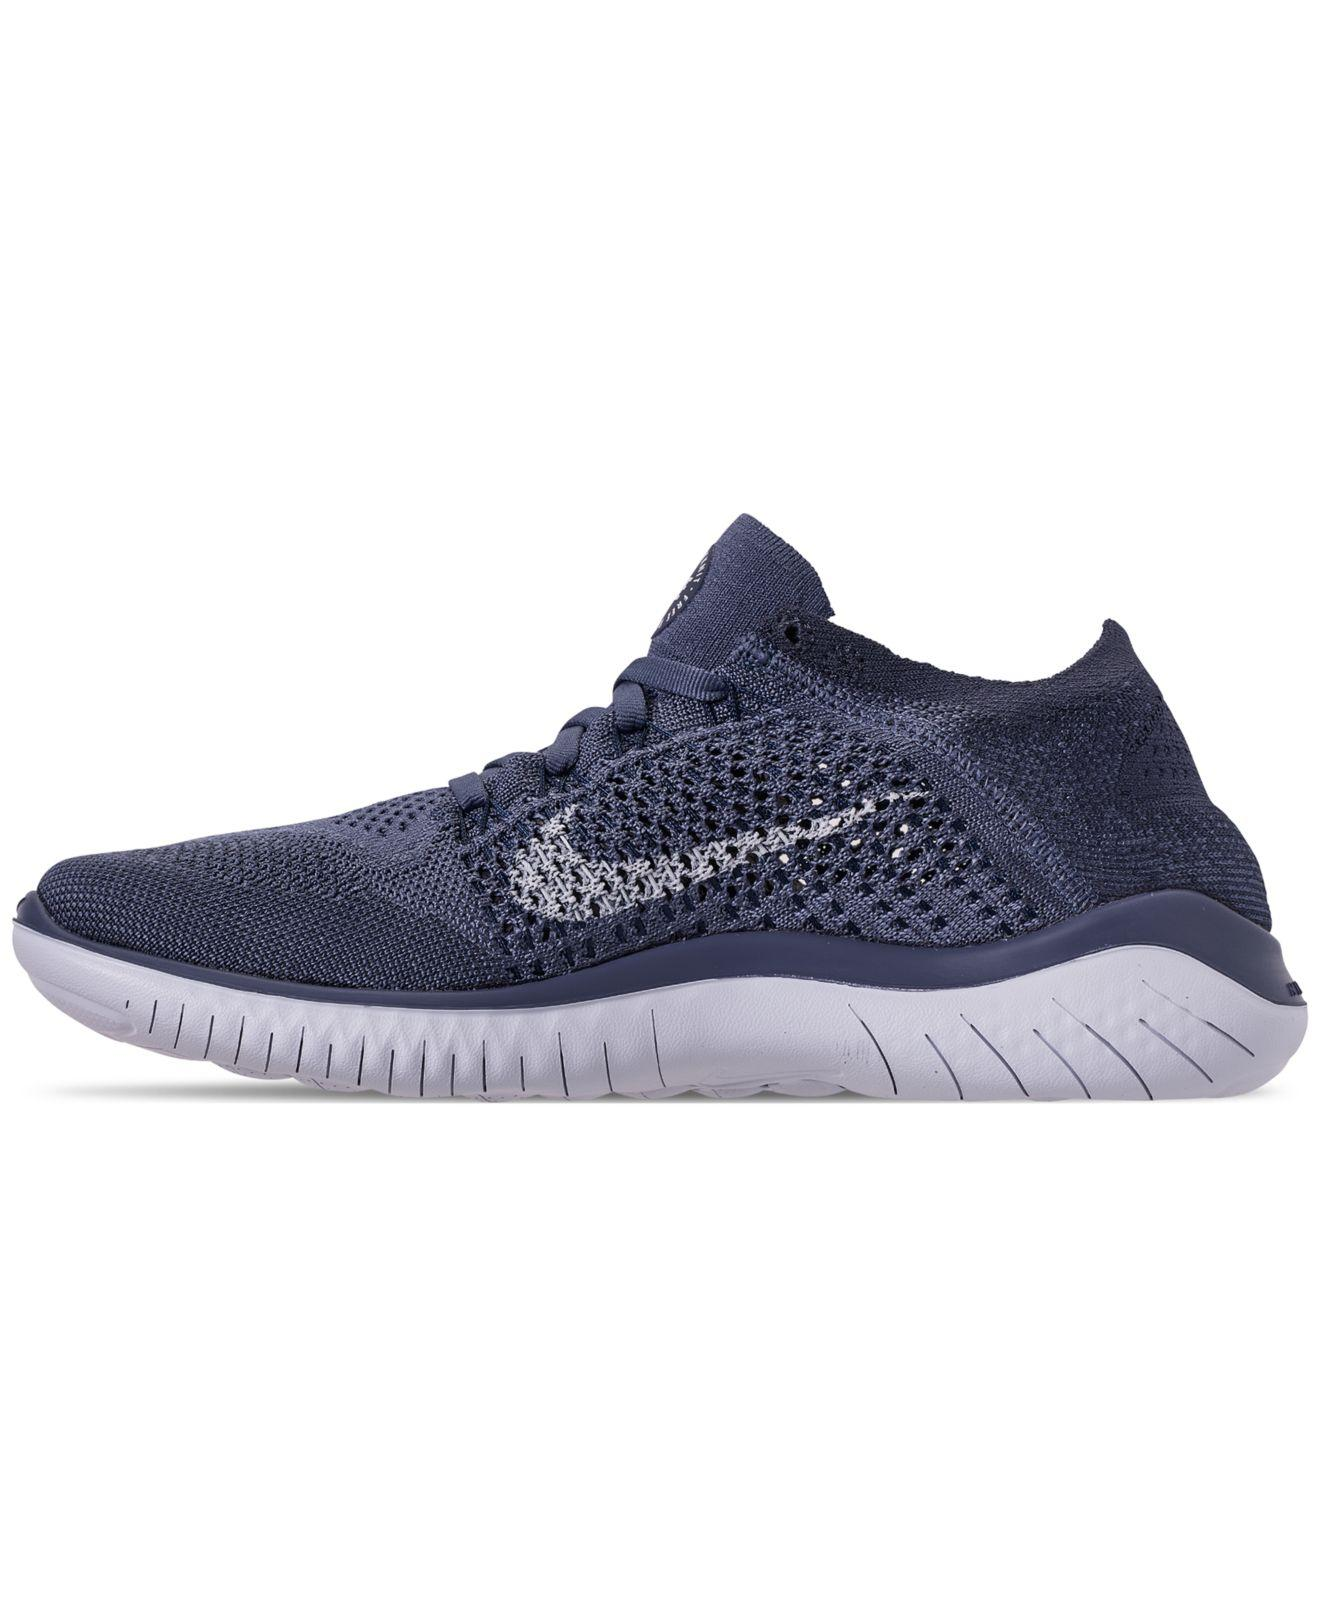 b722438b8f24 Lyst - Nike Free Rn Flyknit 2018 Running Sneakers From Finish Line in Blue  for Men